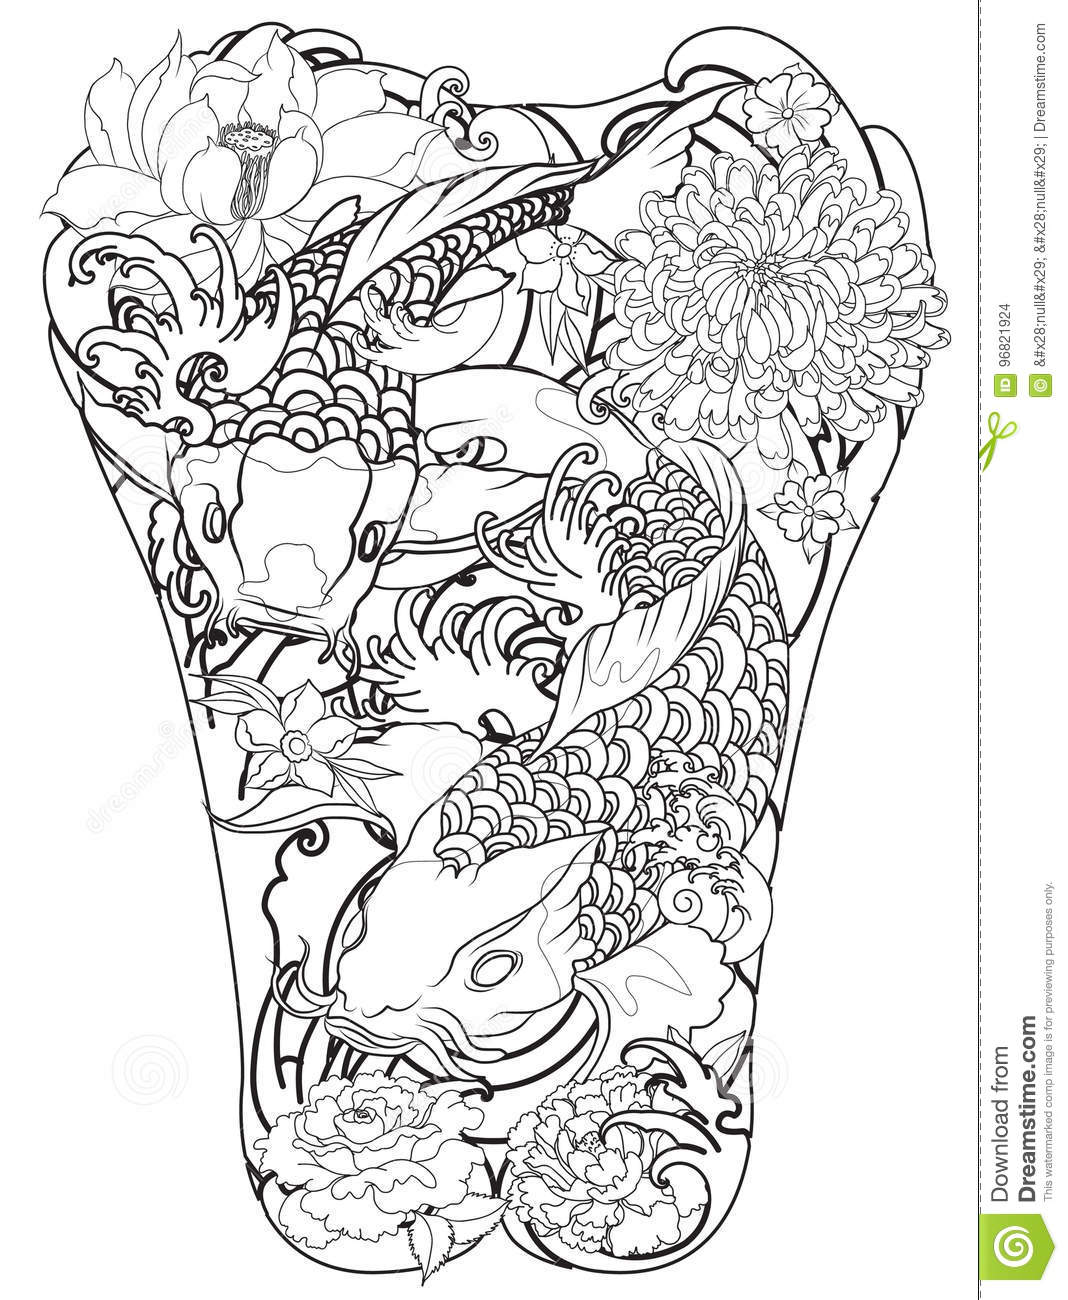 Koi Fish With Peony Flower And Wave TattooJapanese Tattoo For Back Body